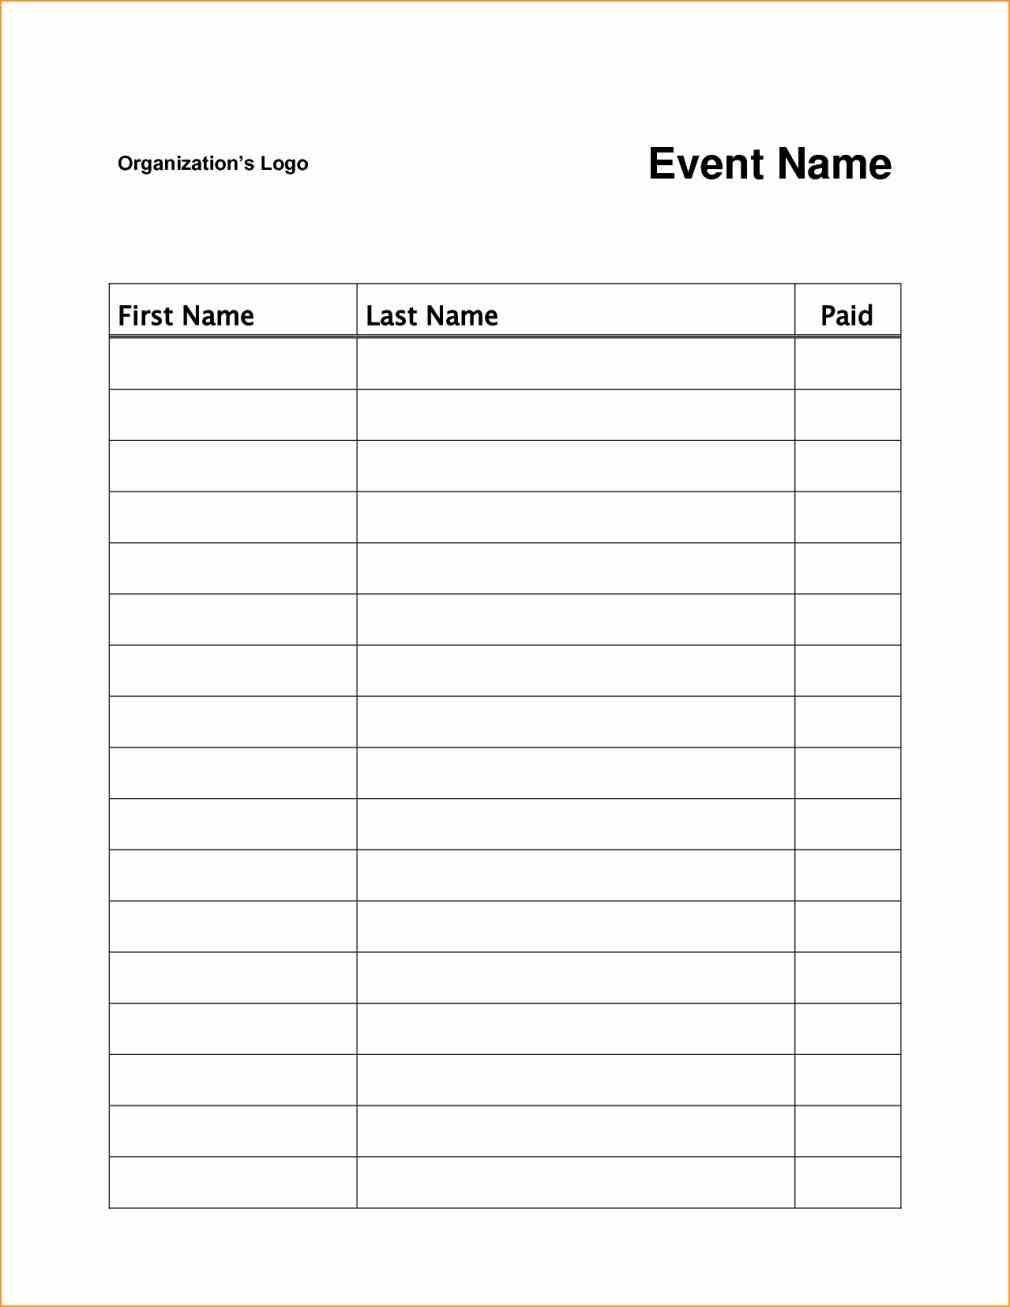 Event Or Class Workshop Forms A Sign Up Sheet Template Word Simple Signup Sheet With Room For Names And Sign In Sheet Template Sign In Sheet Sign Up Sheets